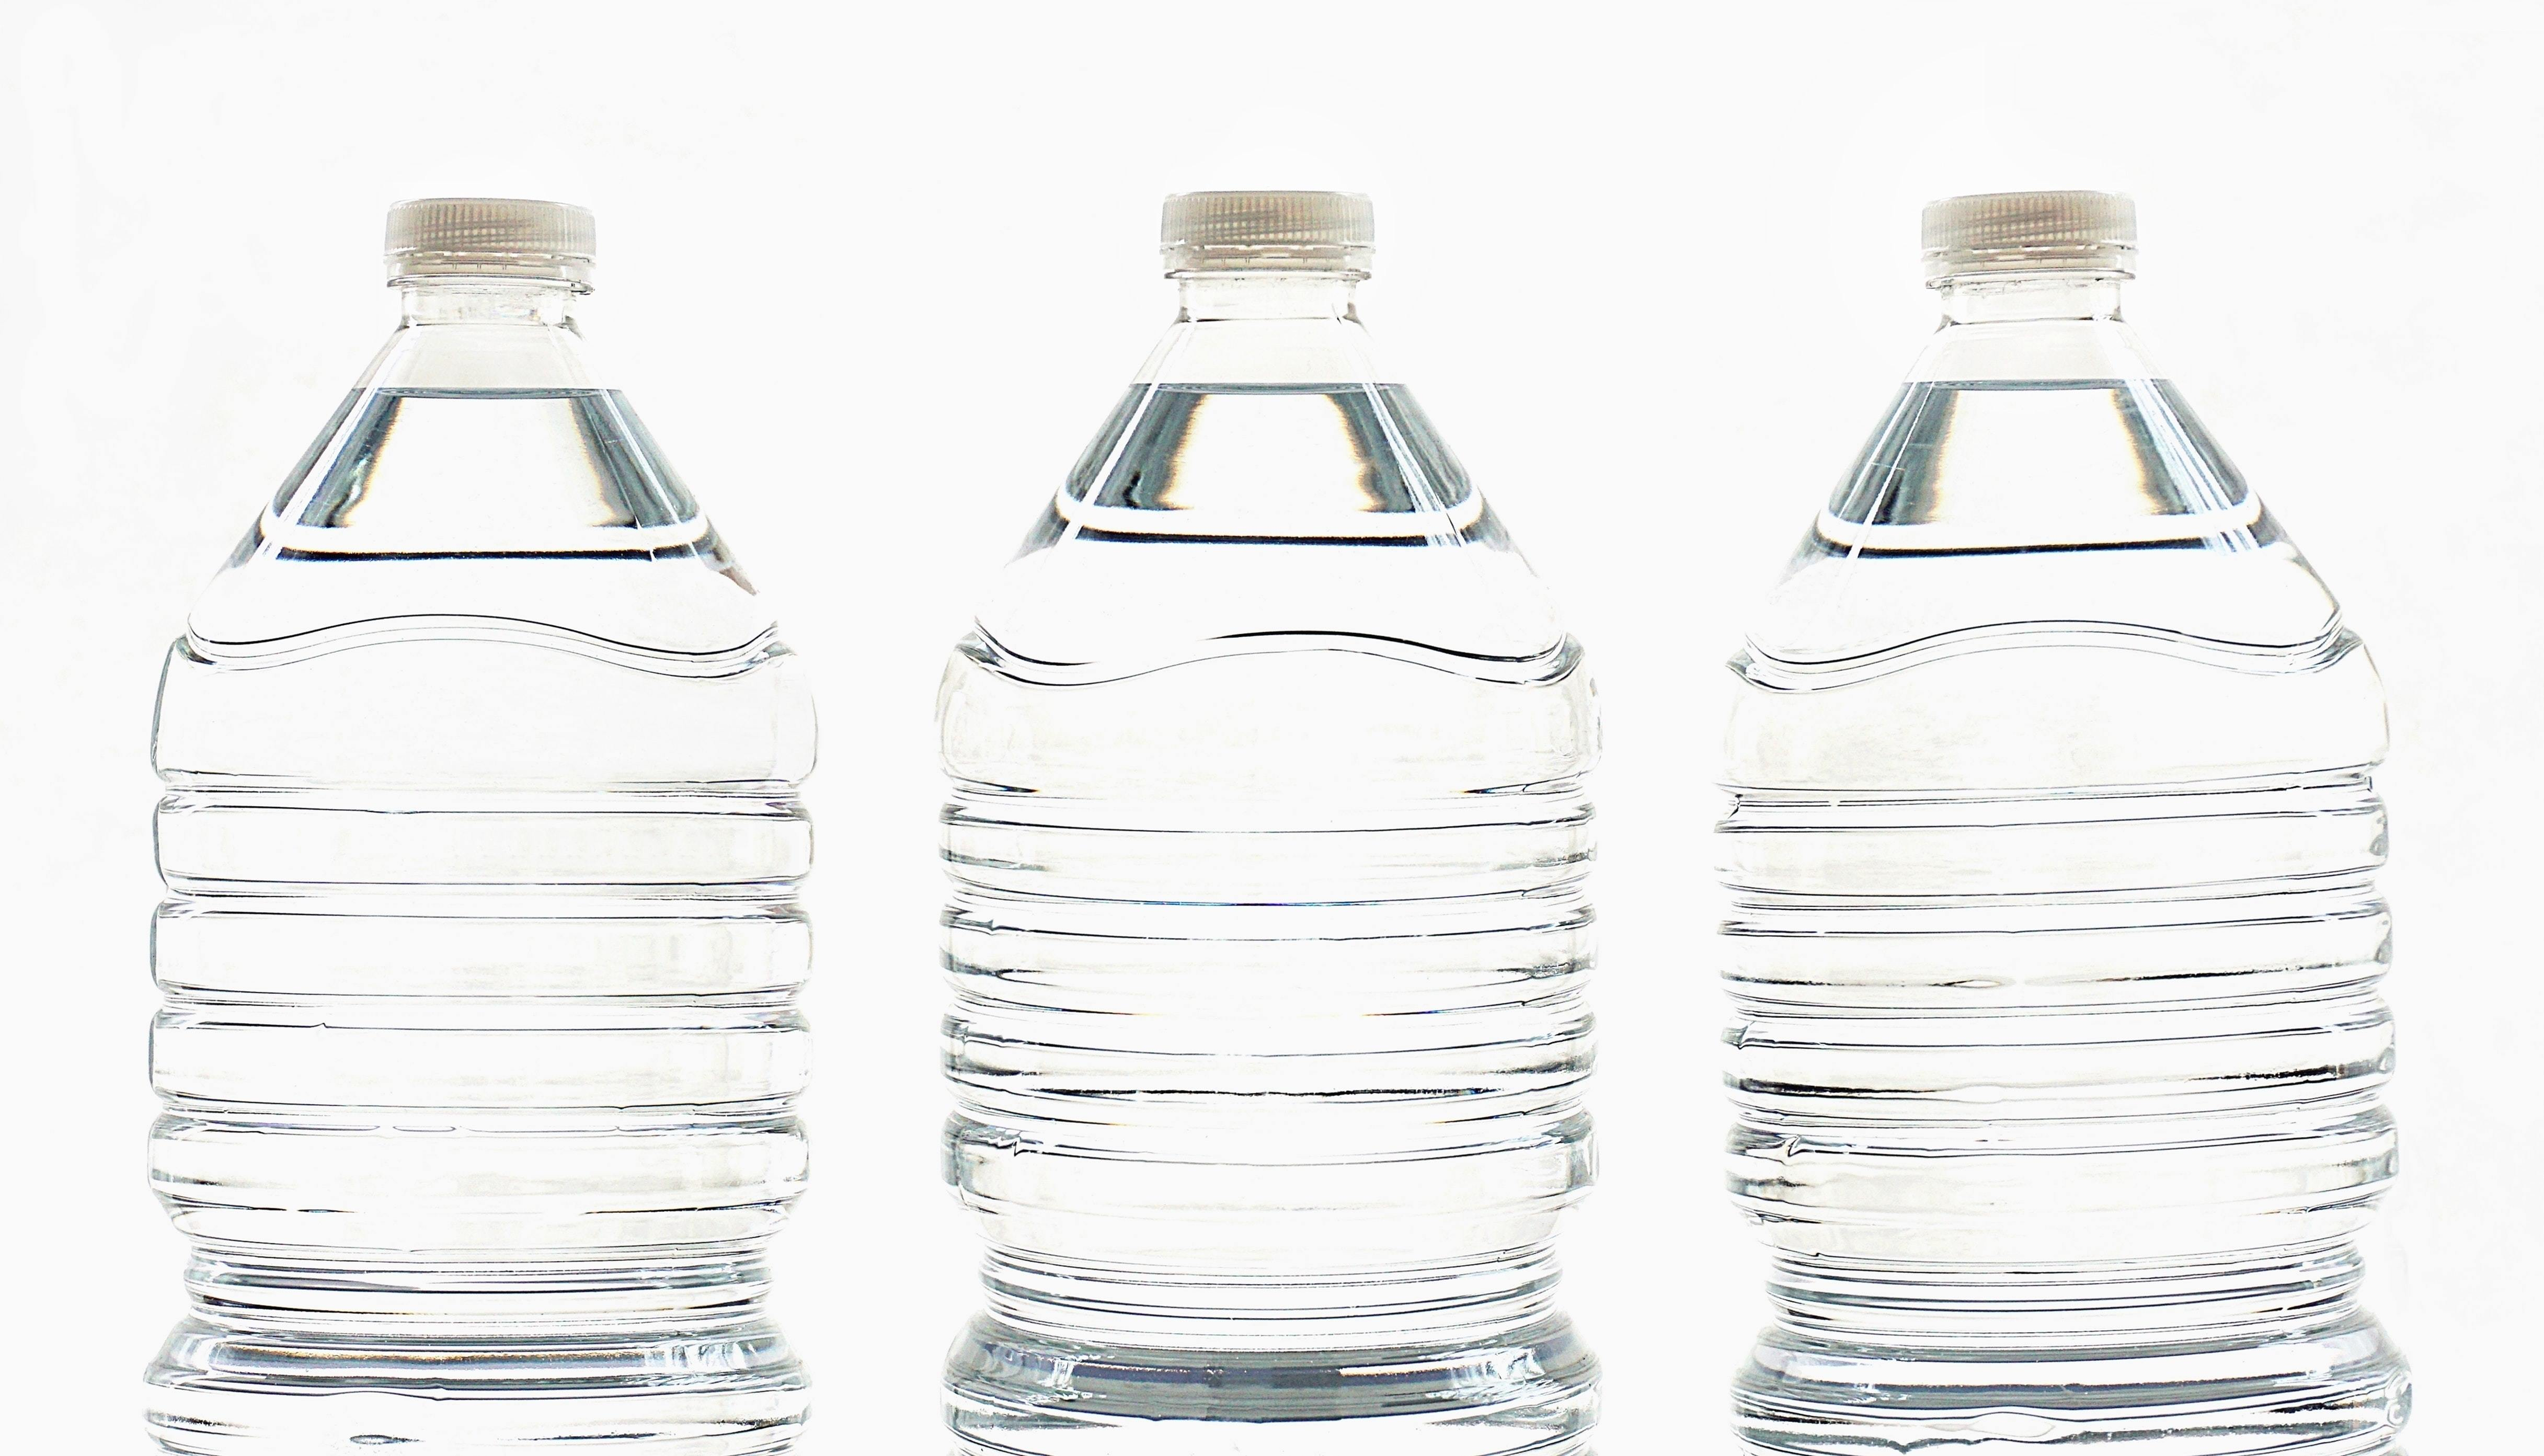 Stock image of water bottles.